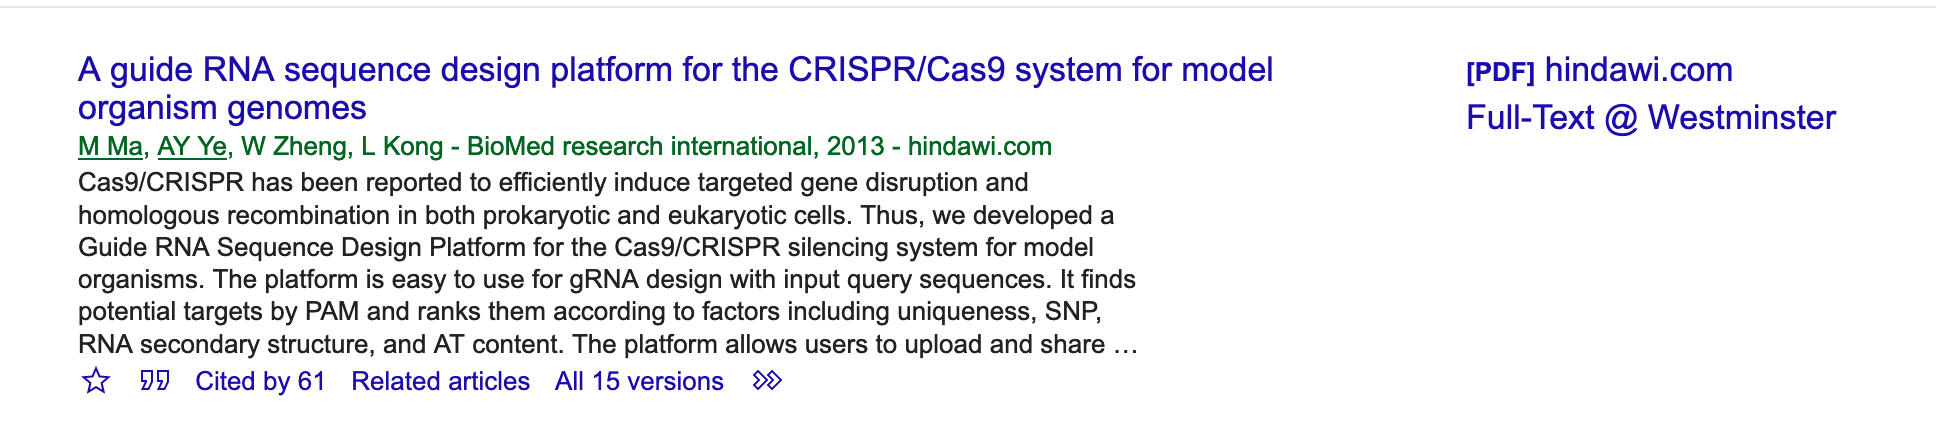 "Google Scholar result for ""A Guide RNA Sequence Design Platform..."" - 61 citations"